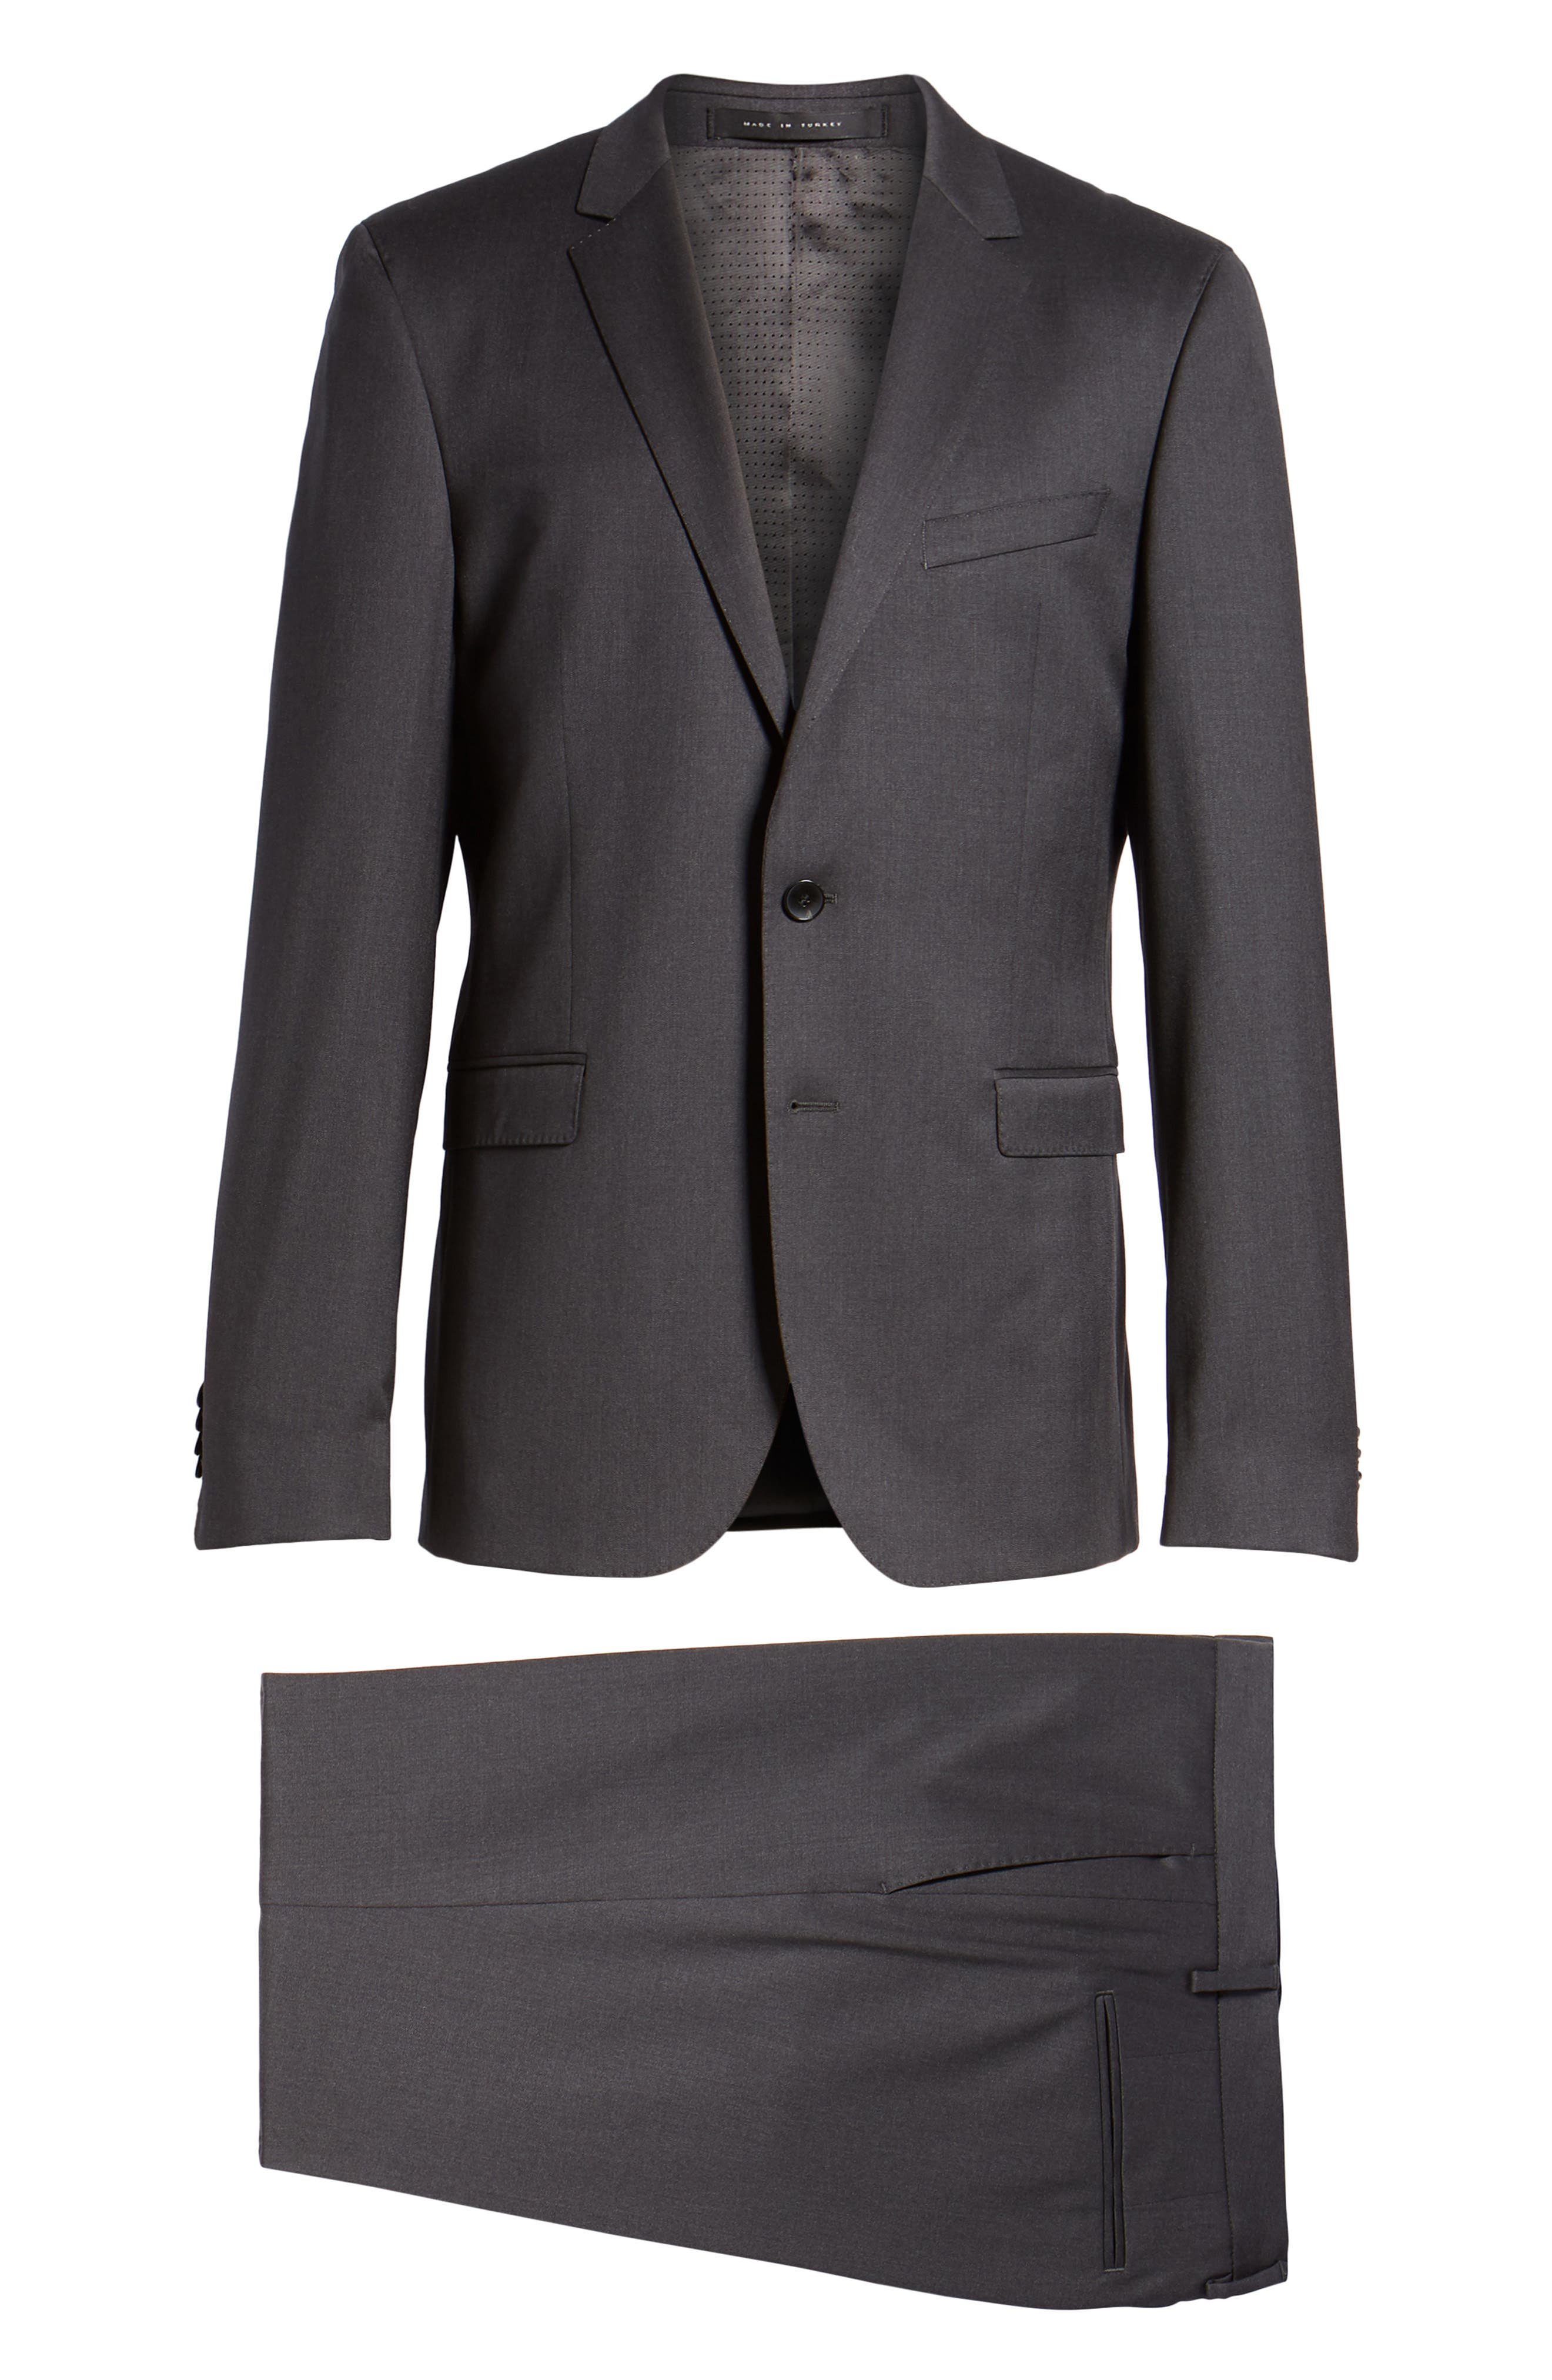 'Ryan/Win' Extra Trim Fit Solid Wool Suit,                             Alternate thumbnail 10, color,                             021